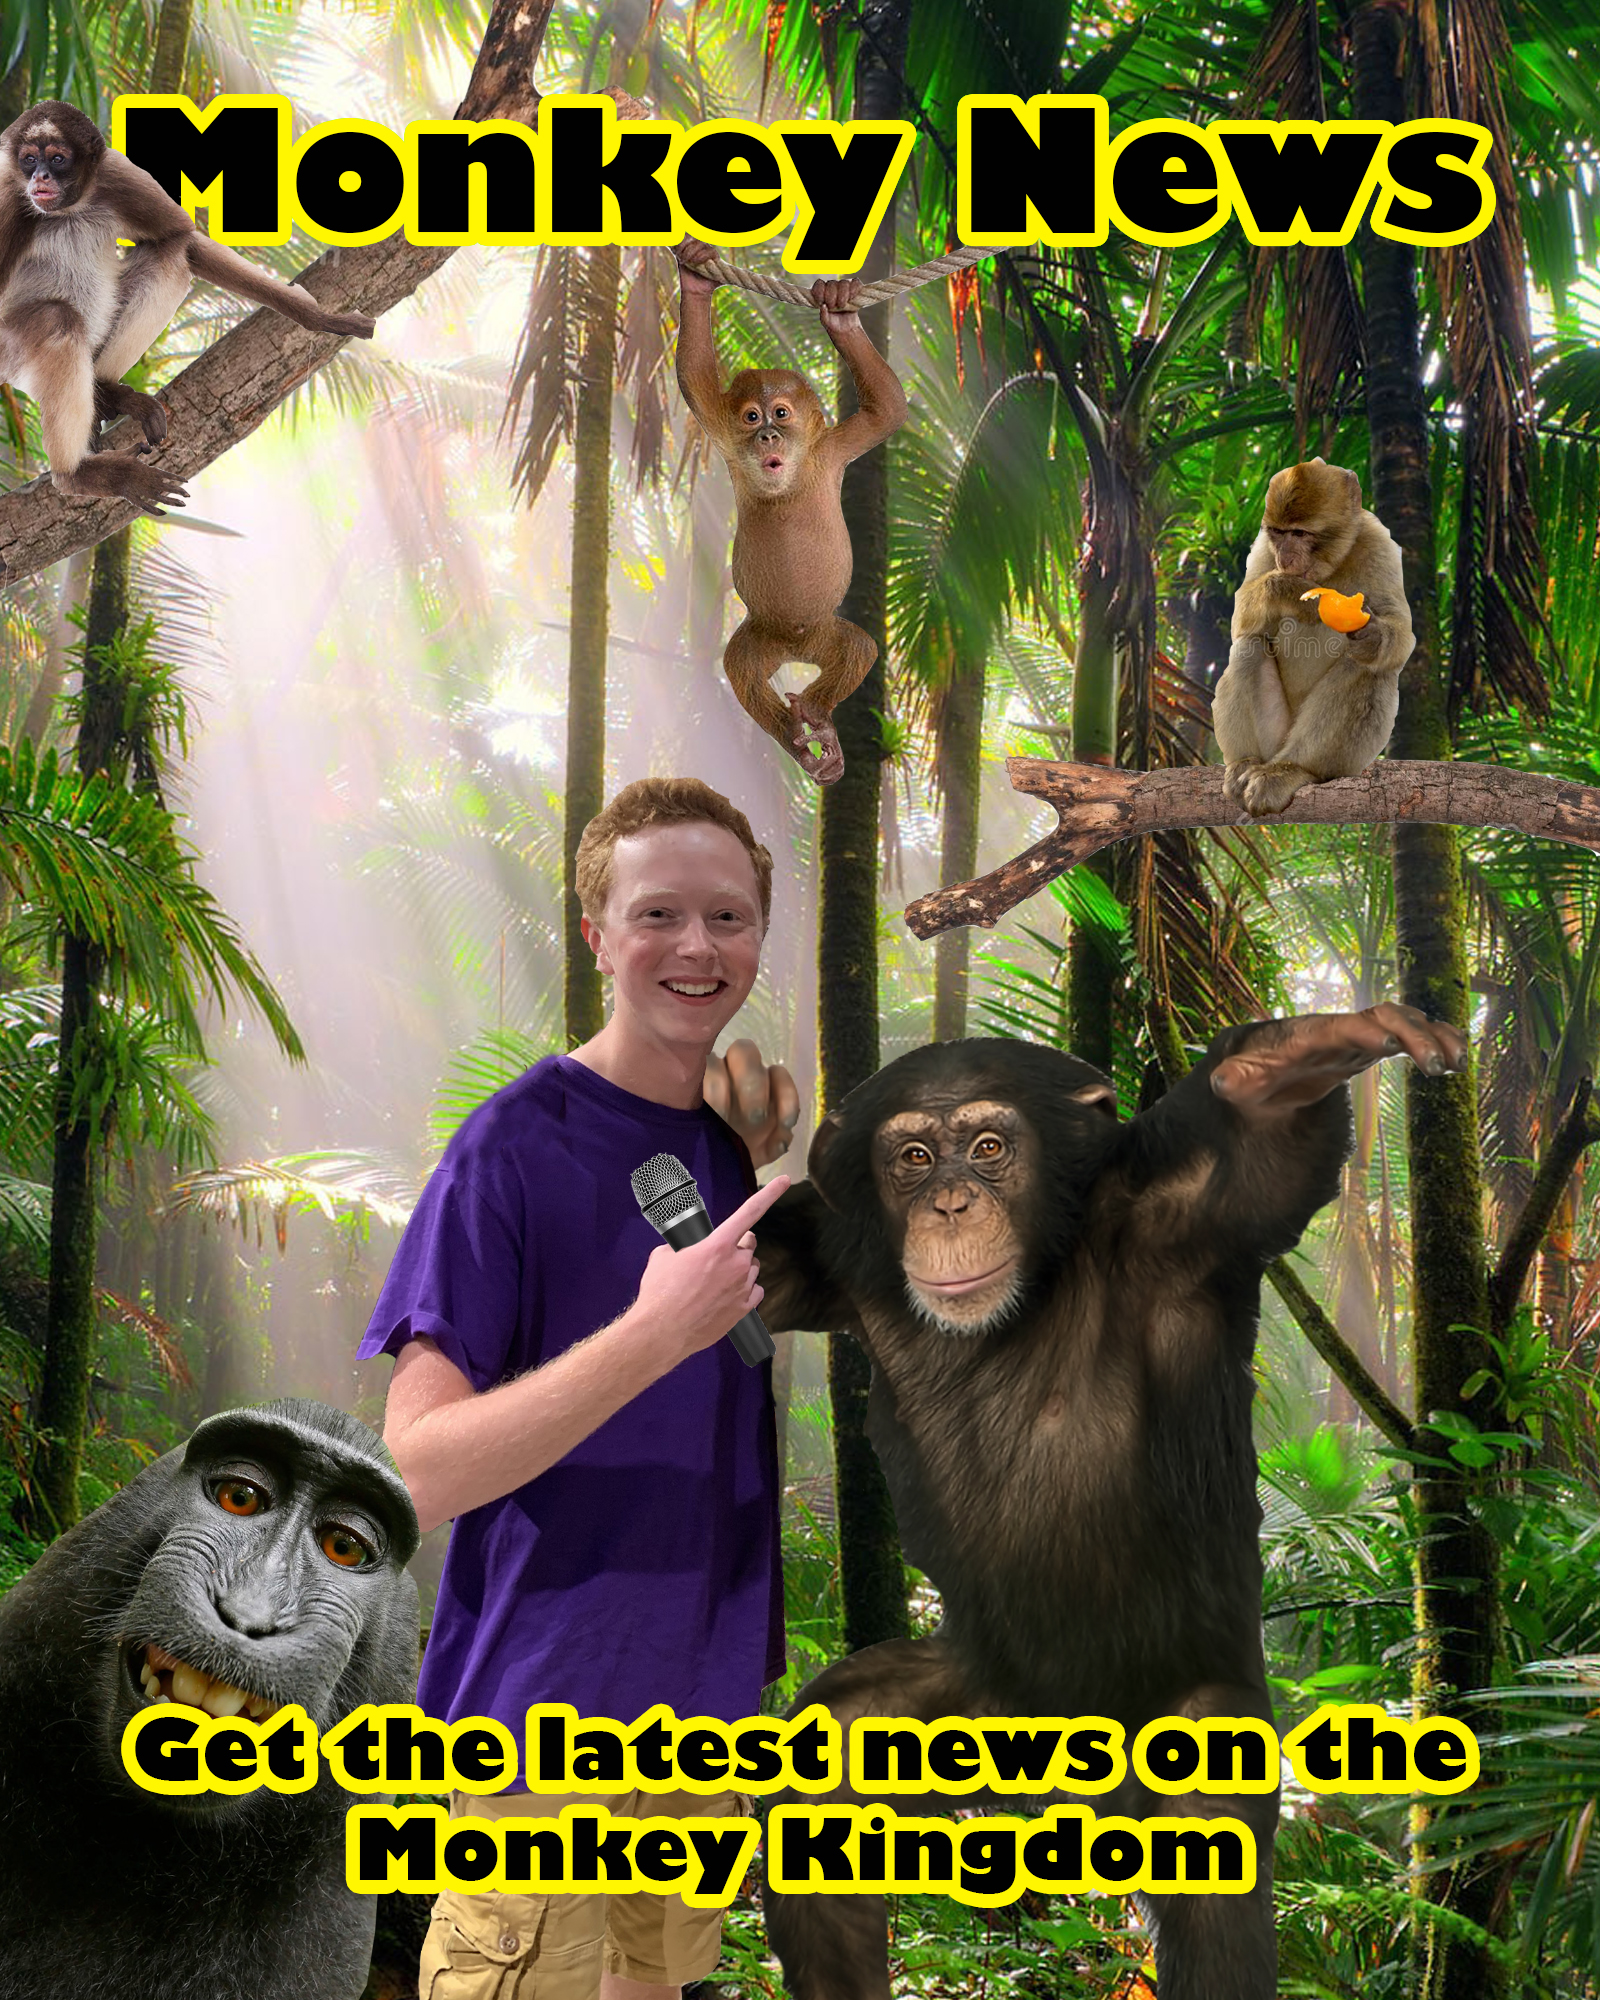 Nick Beebes magazine cover of his love for monkeys